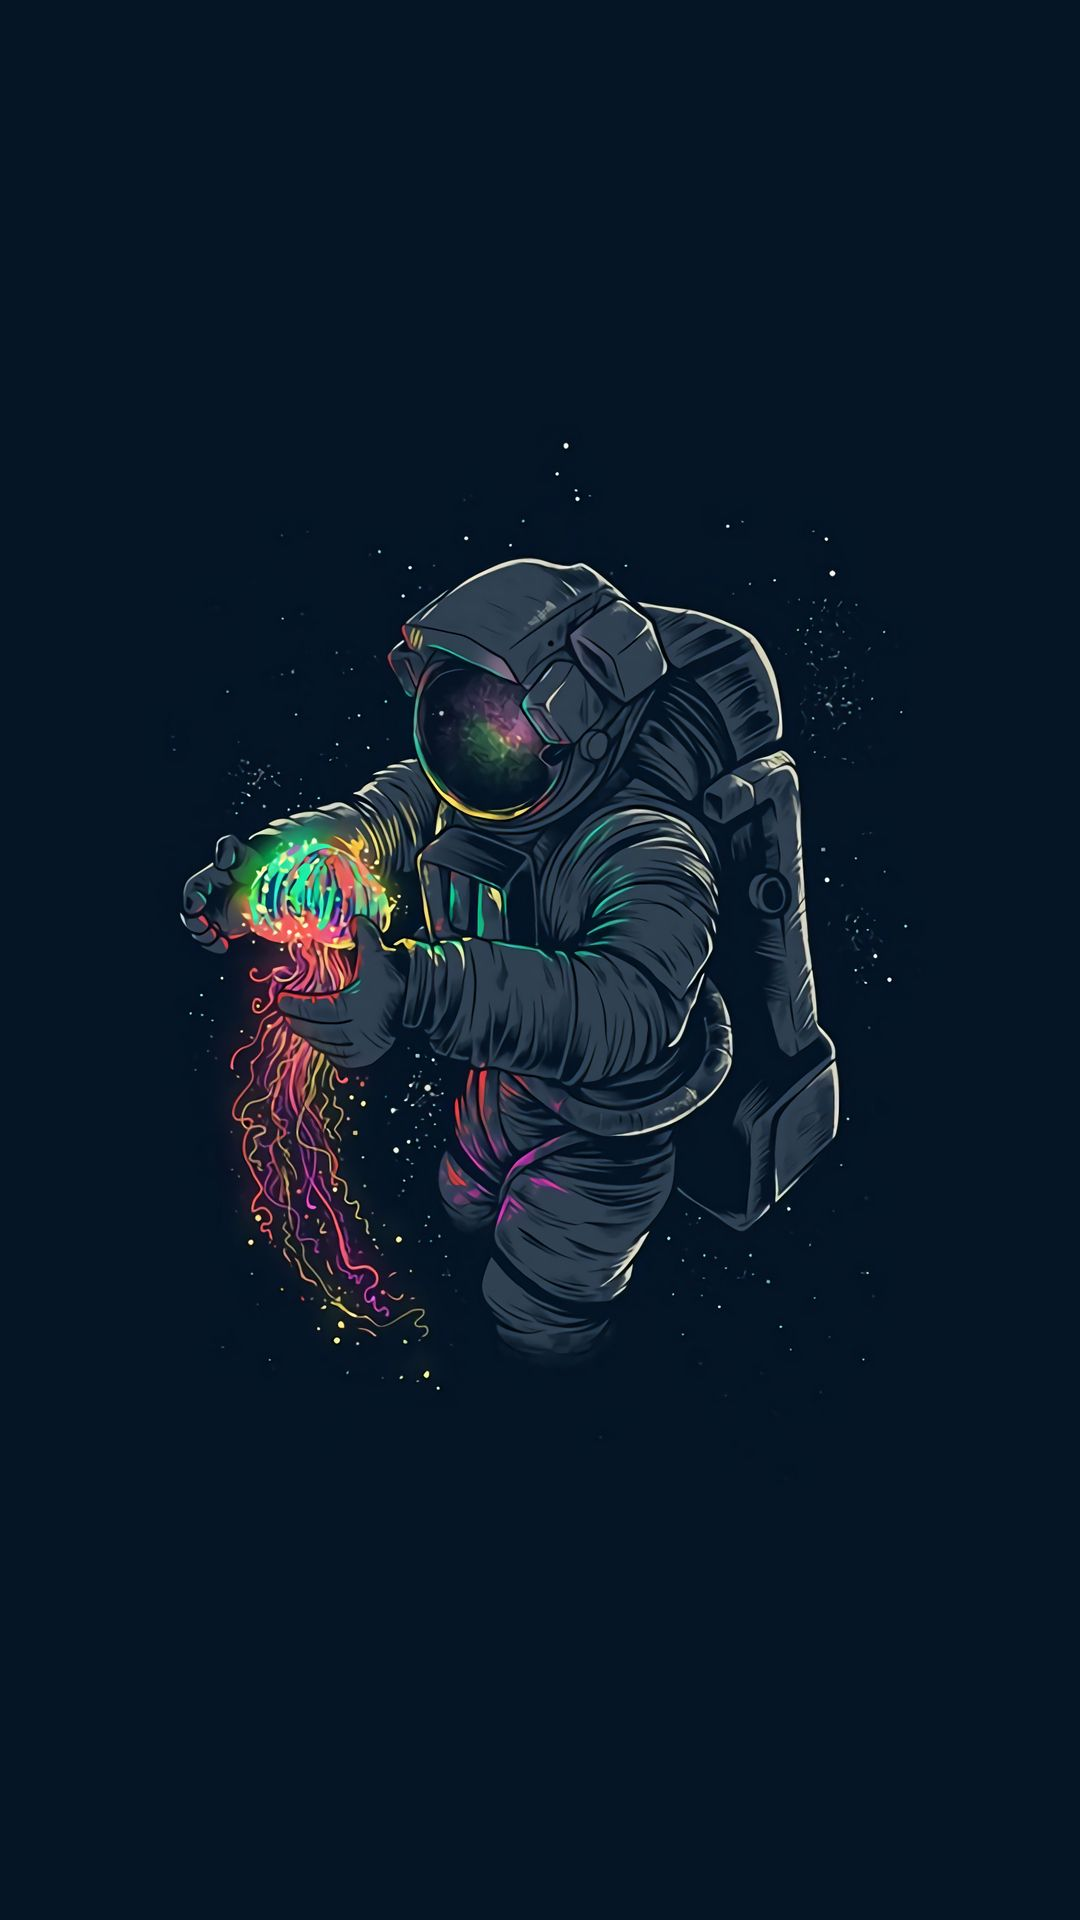 Phone Wallpapers Curated Astronaut Wallpaper Wallpaper Space Trippy Wallpaper